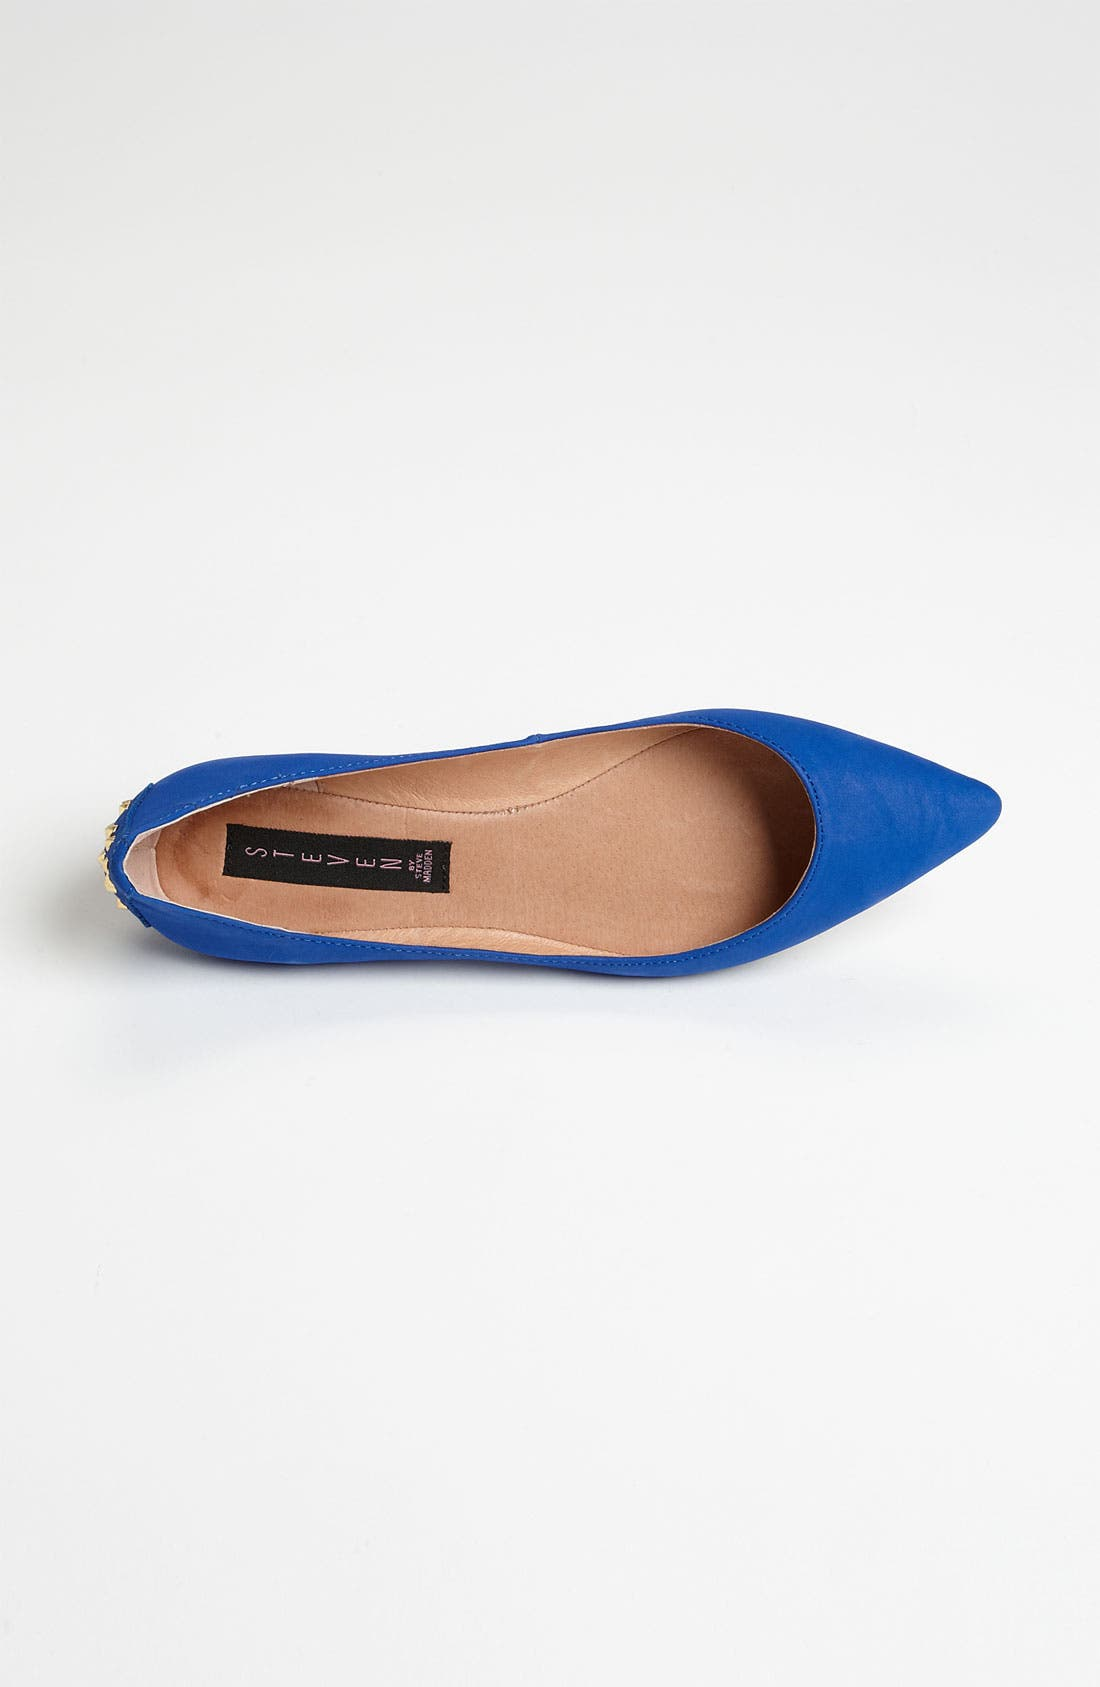 Alternate Image 3  - Steven by Steve Madden 'Eternal' Flat